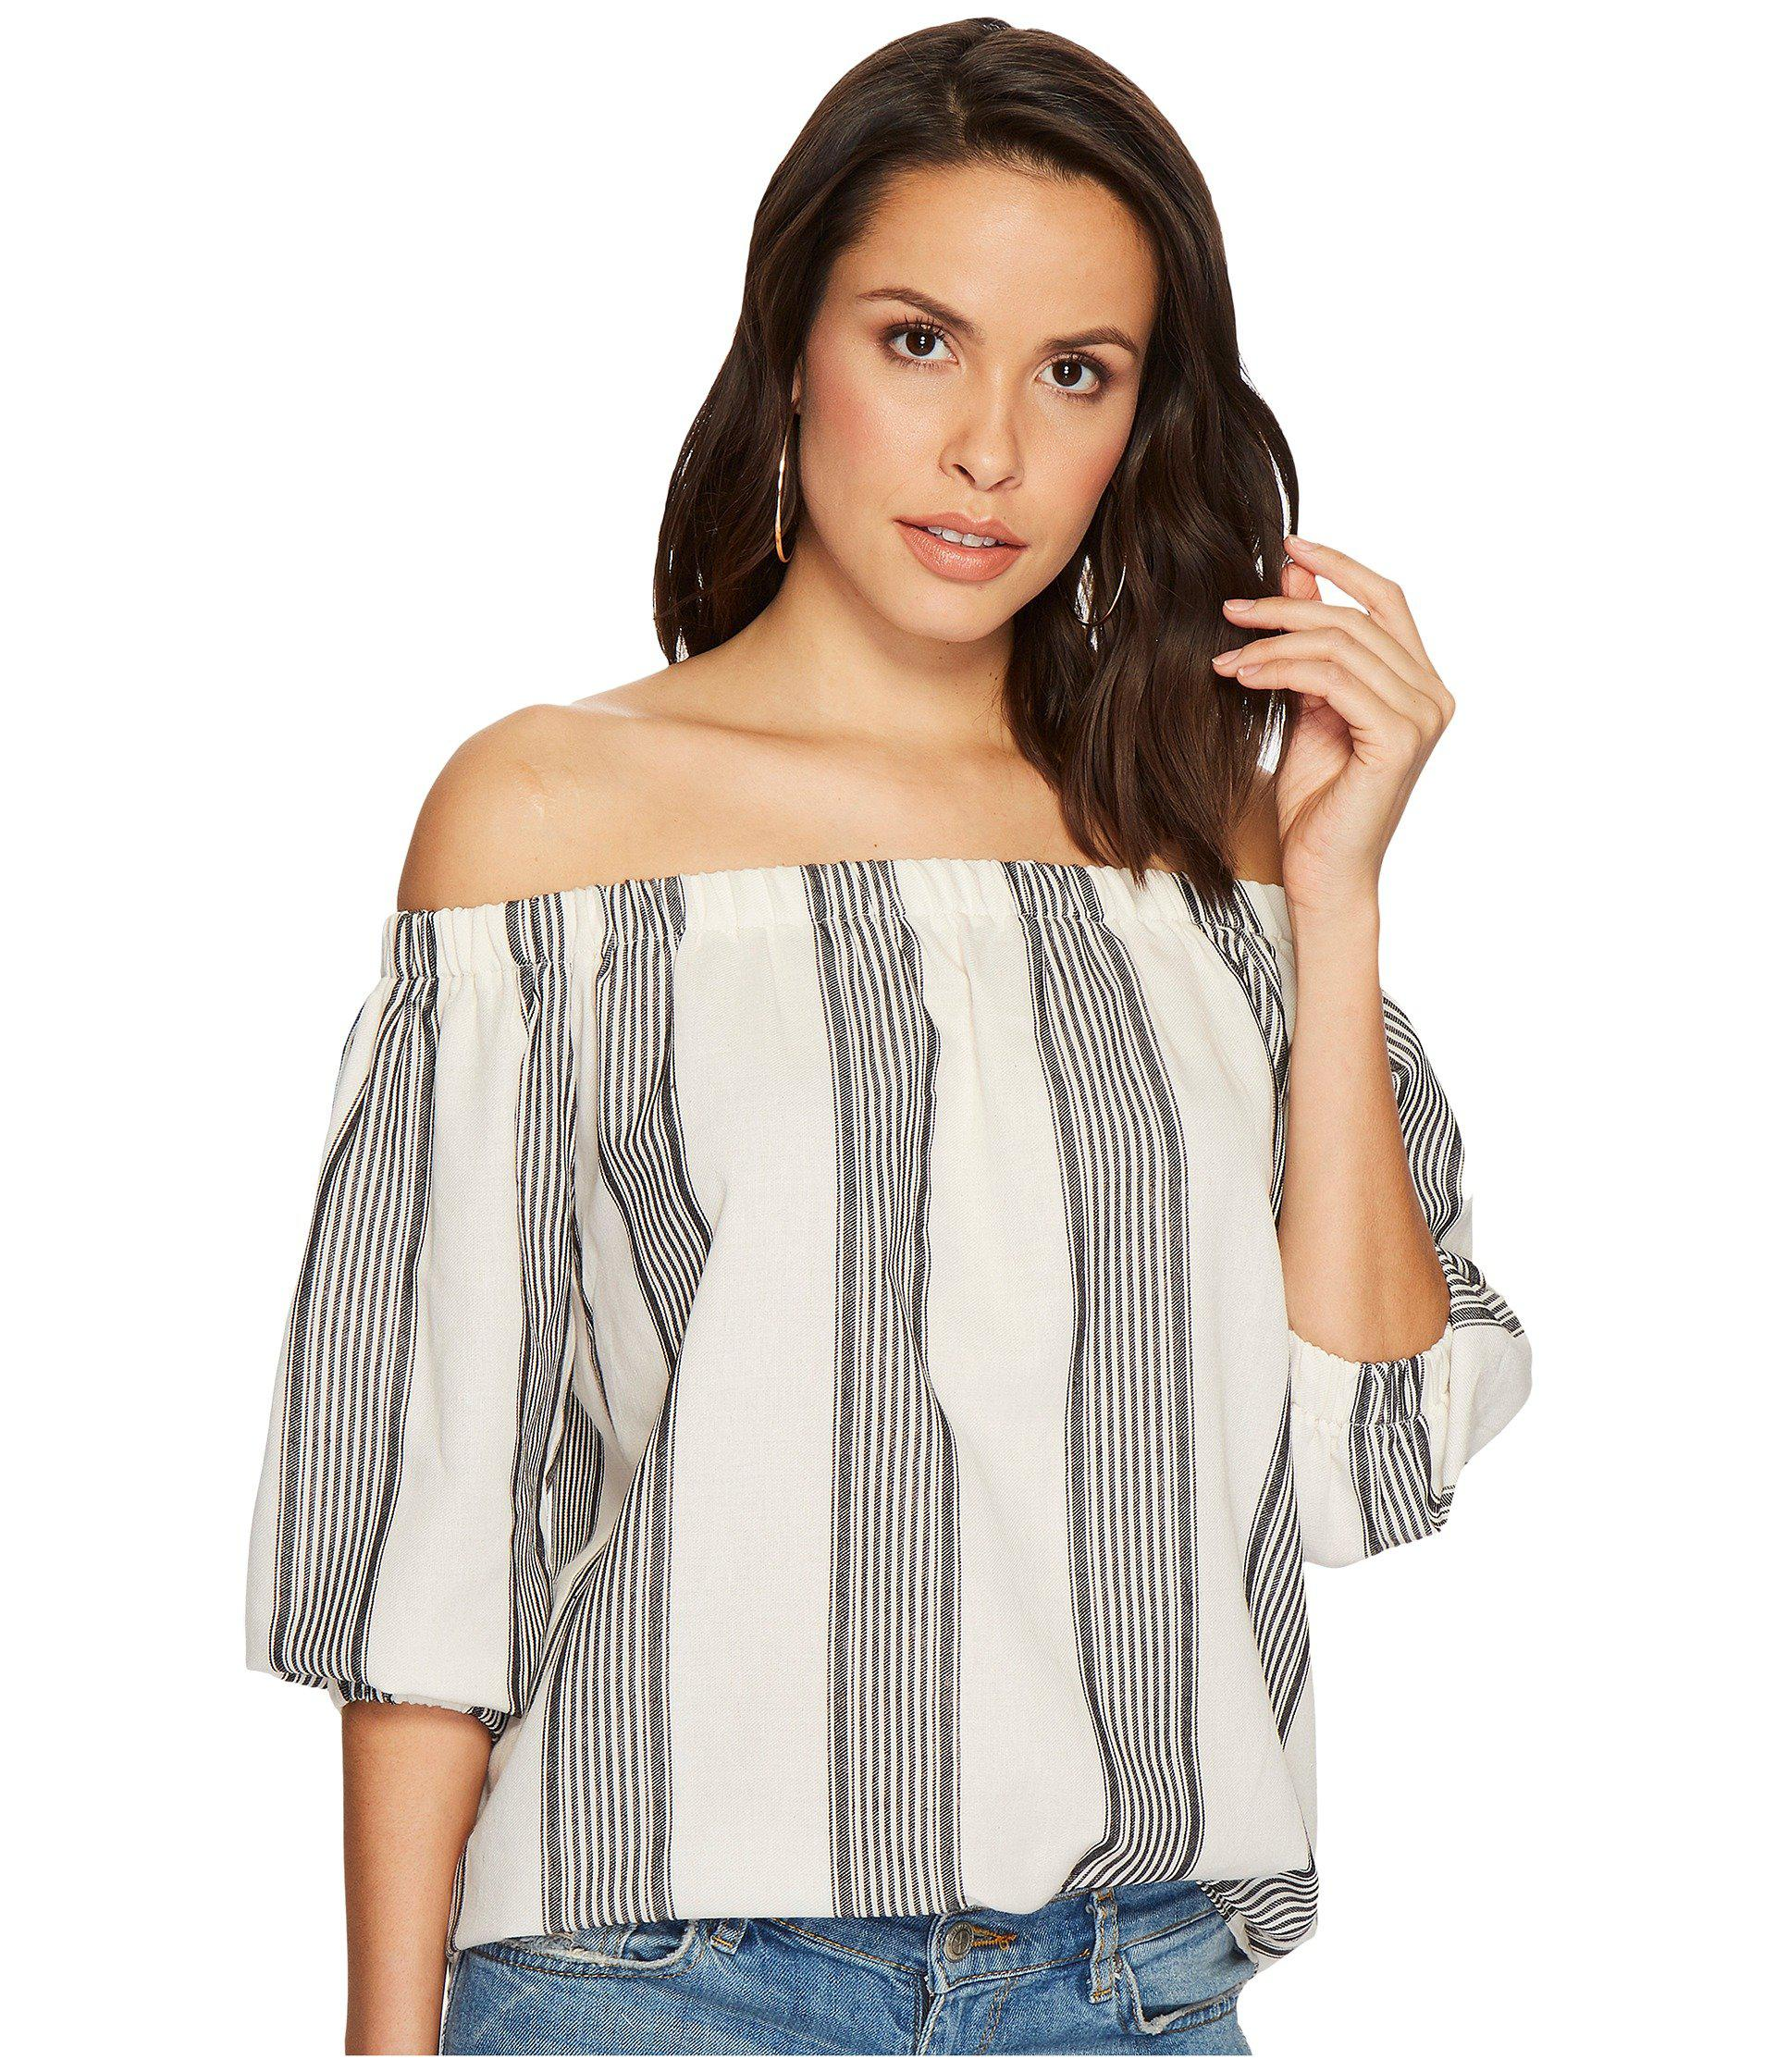 c0bf7b8440afd Lyst - Bishop + Young Karlie Off The Shoulder in Gray - Save 58%